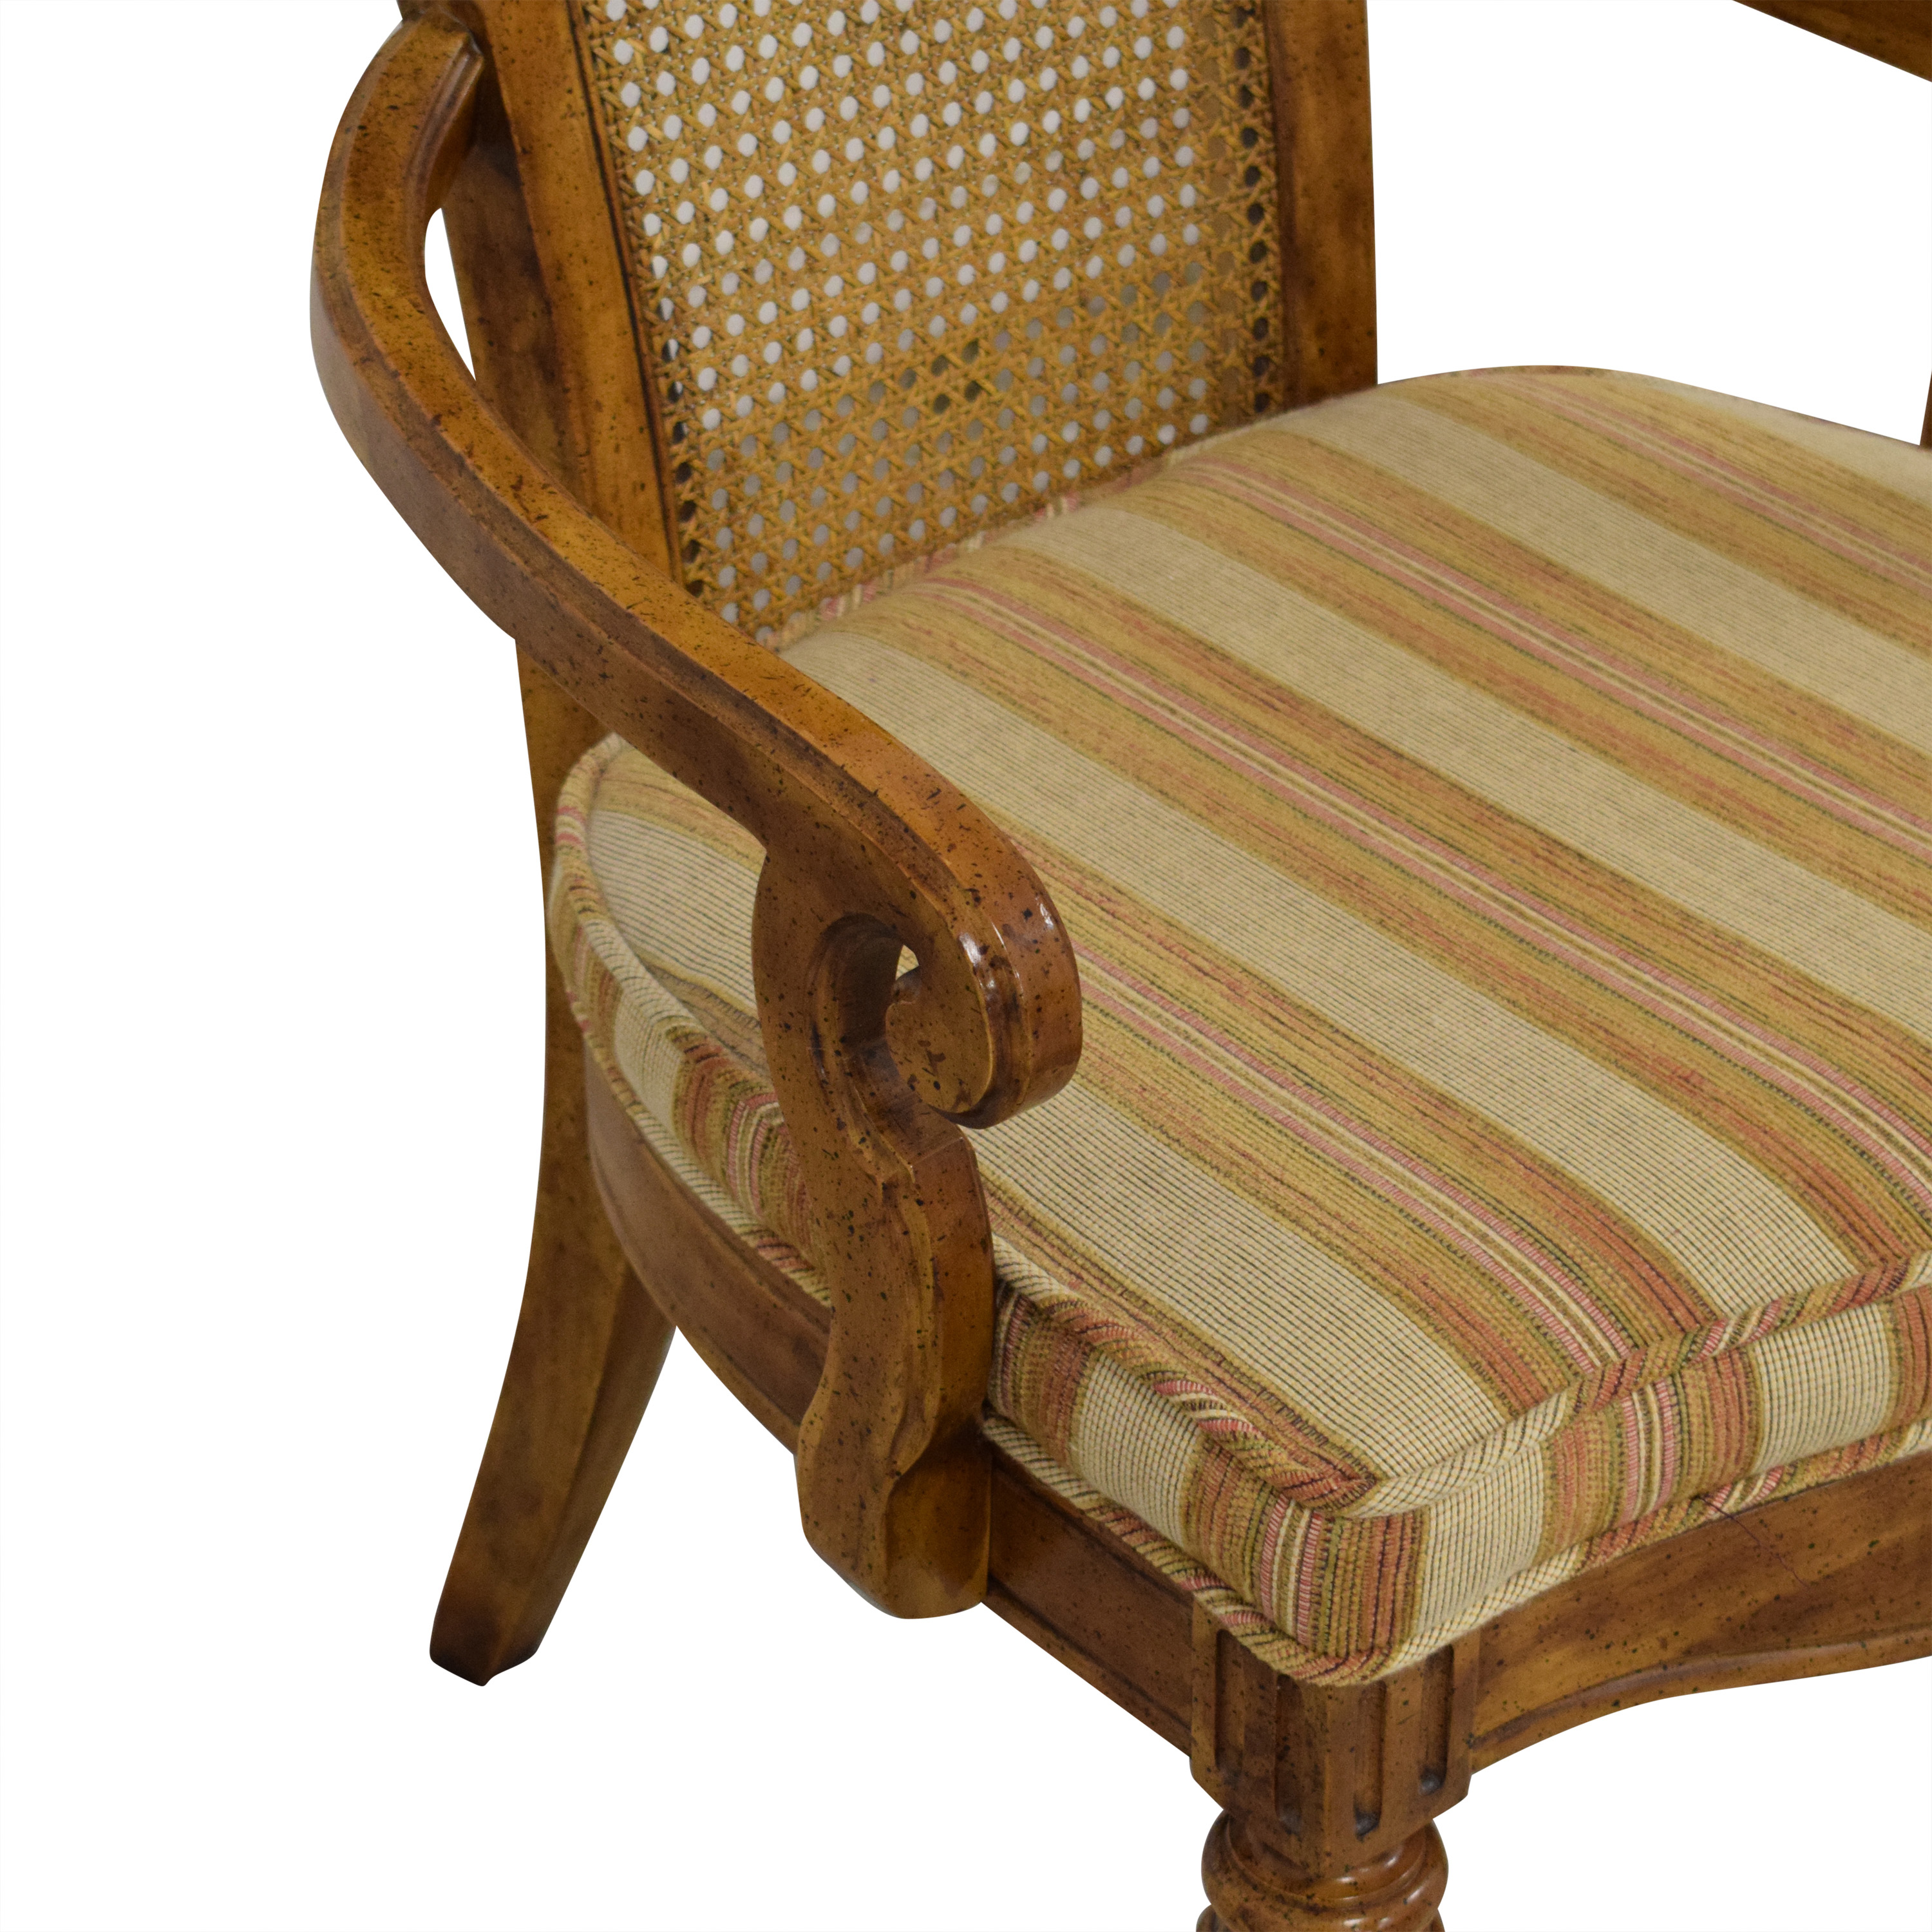 buy JBW Lustig Cane Back Dining Chairs JBW Lustig Dining Chairs